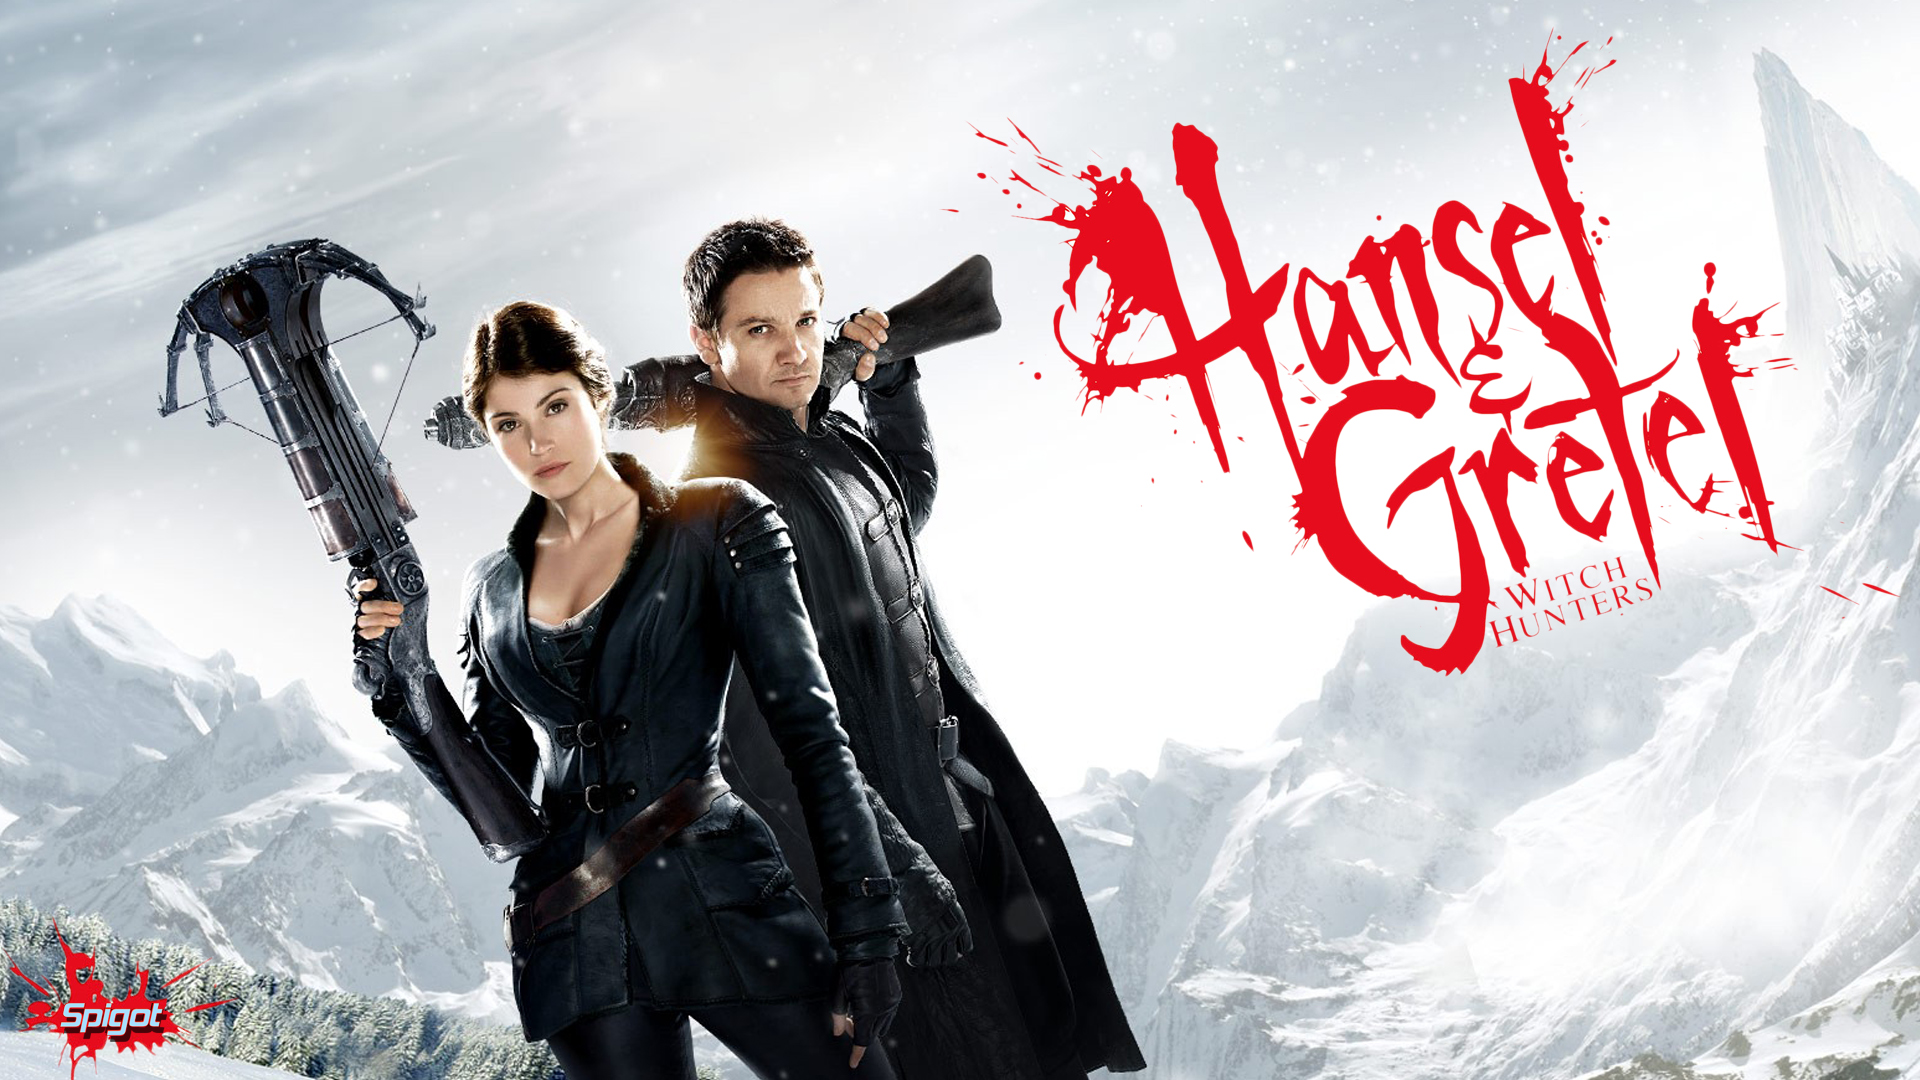 Hansel-and-gretel-1